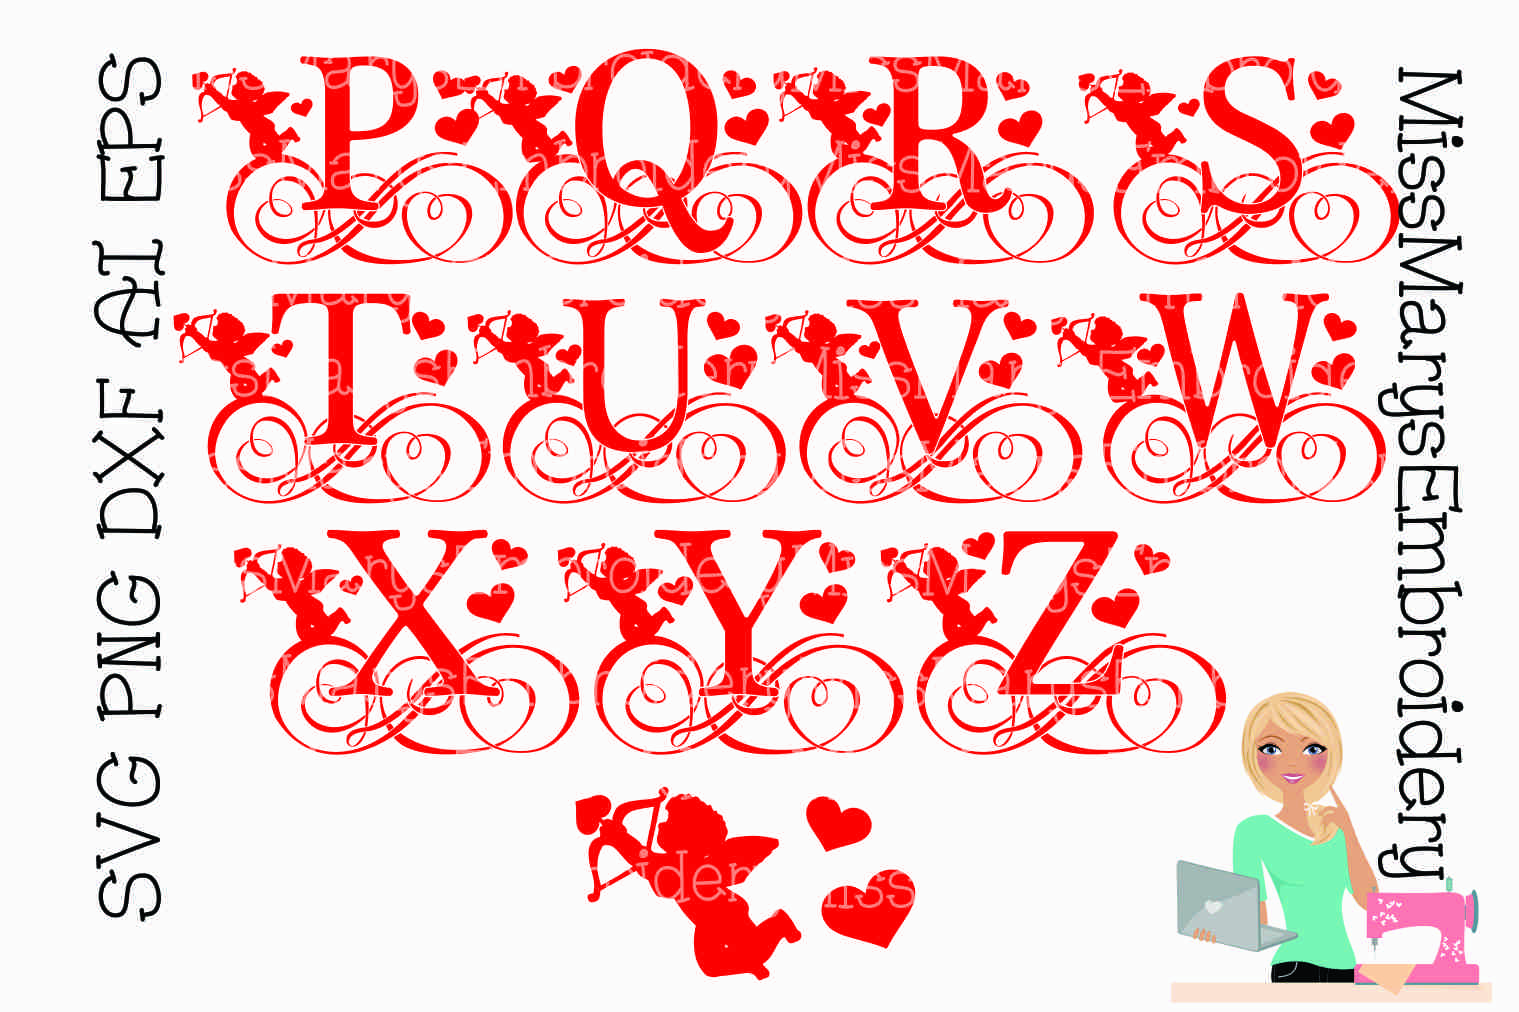 Cupid Swirl Letters SVG Cutting File PNG DXF AI EPS example image 3